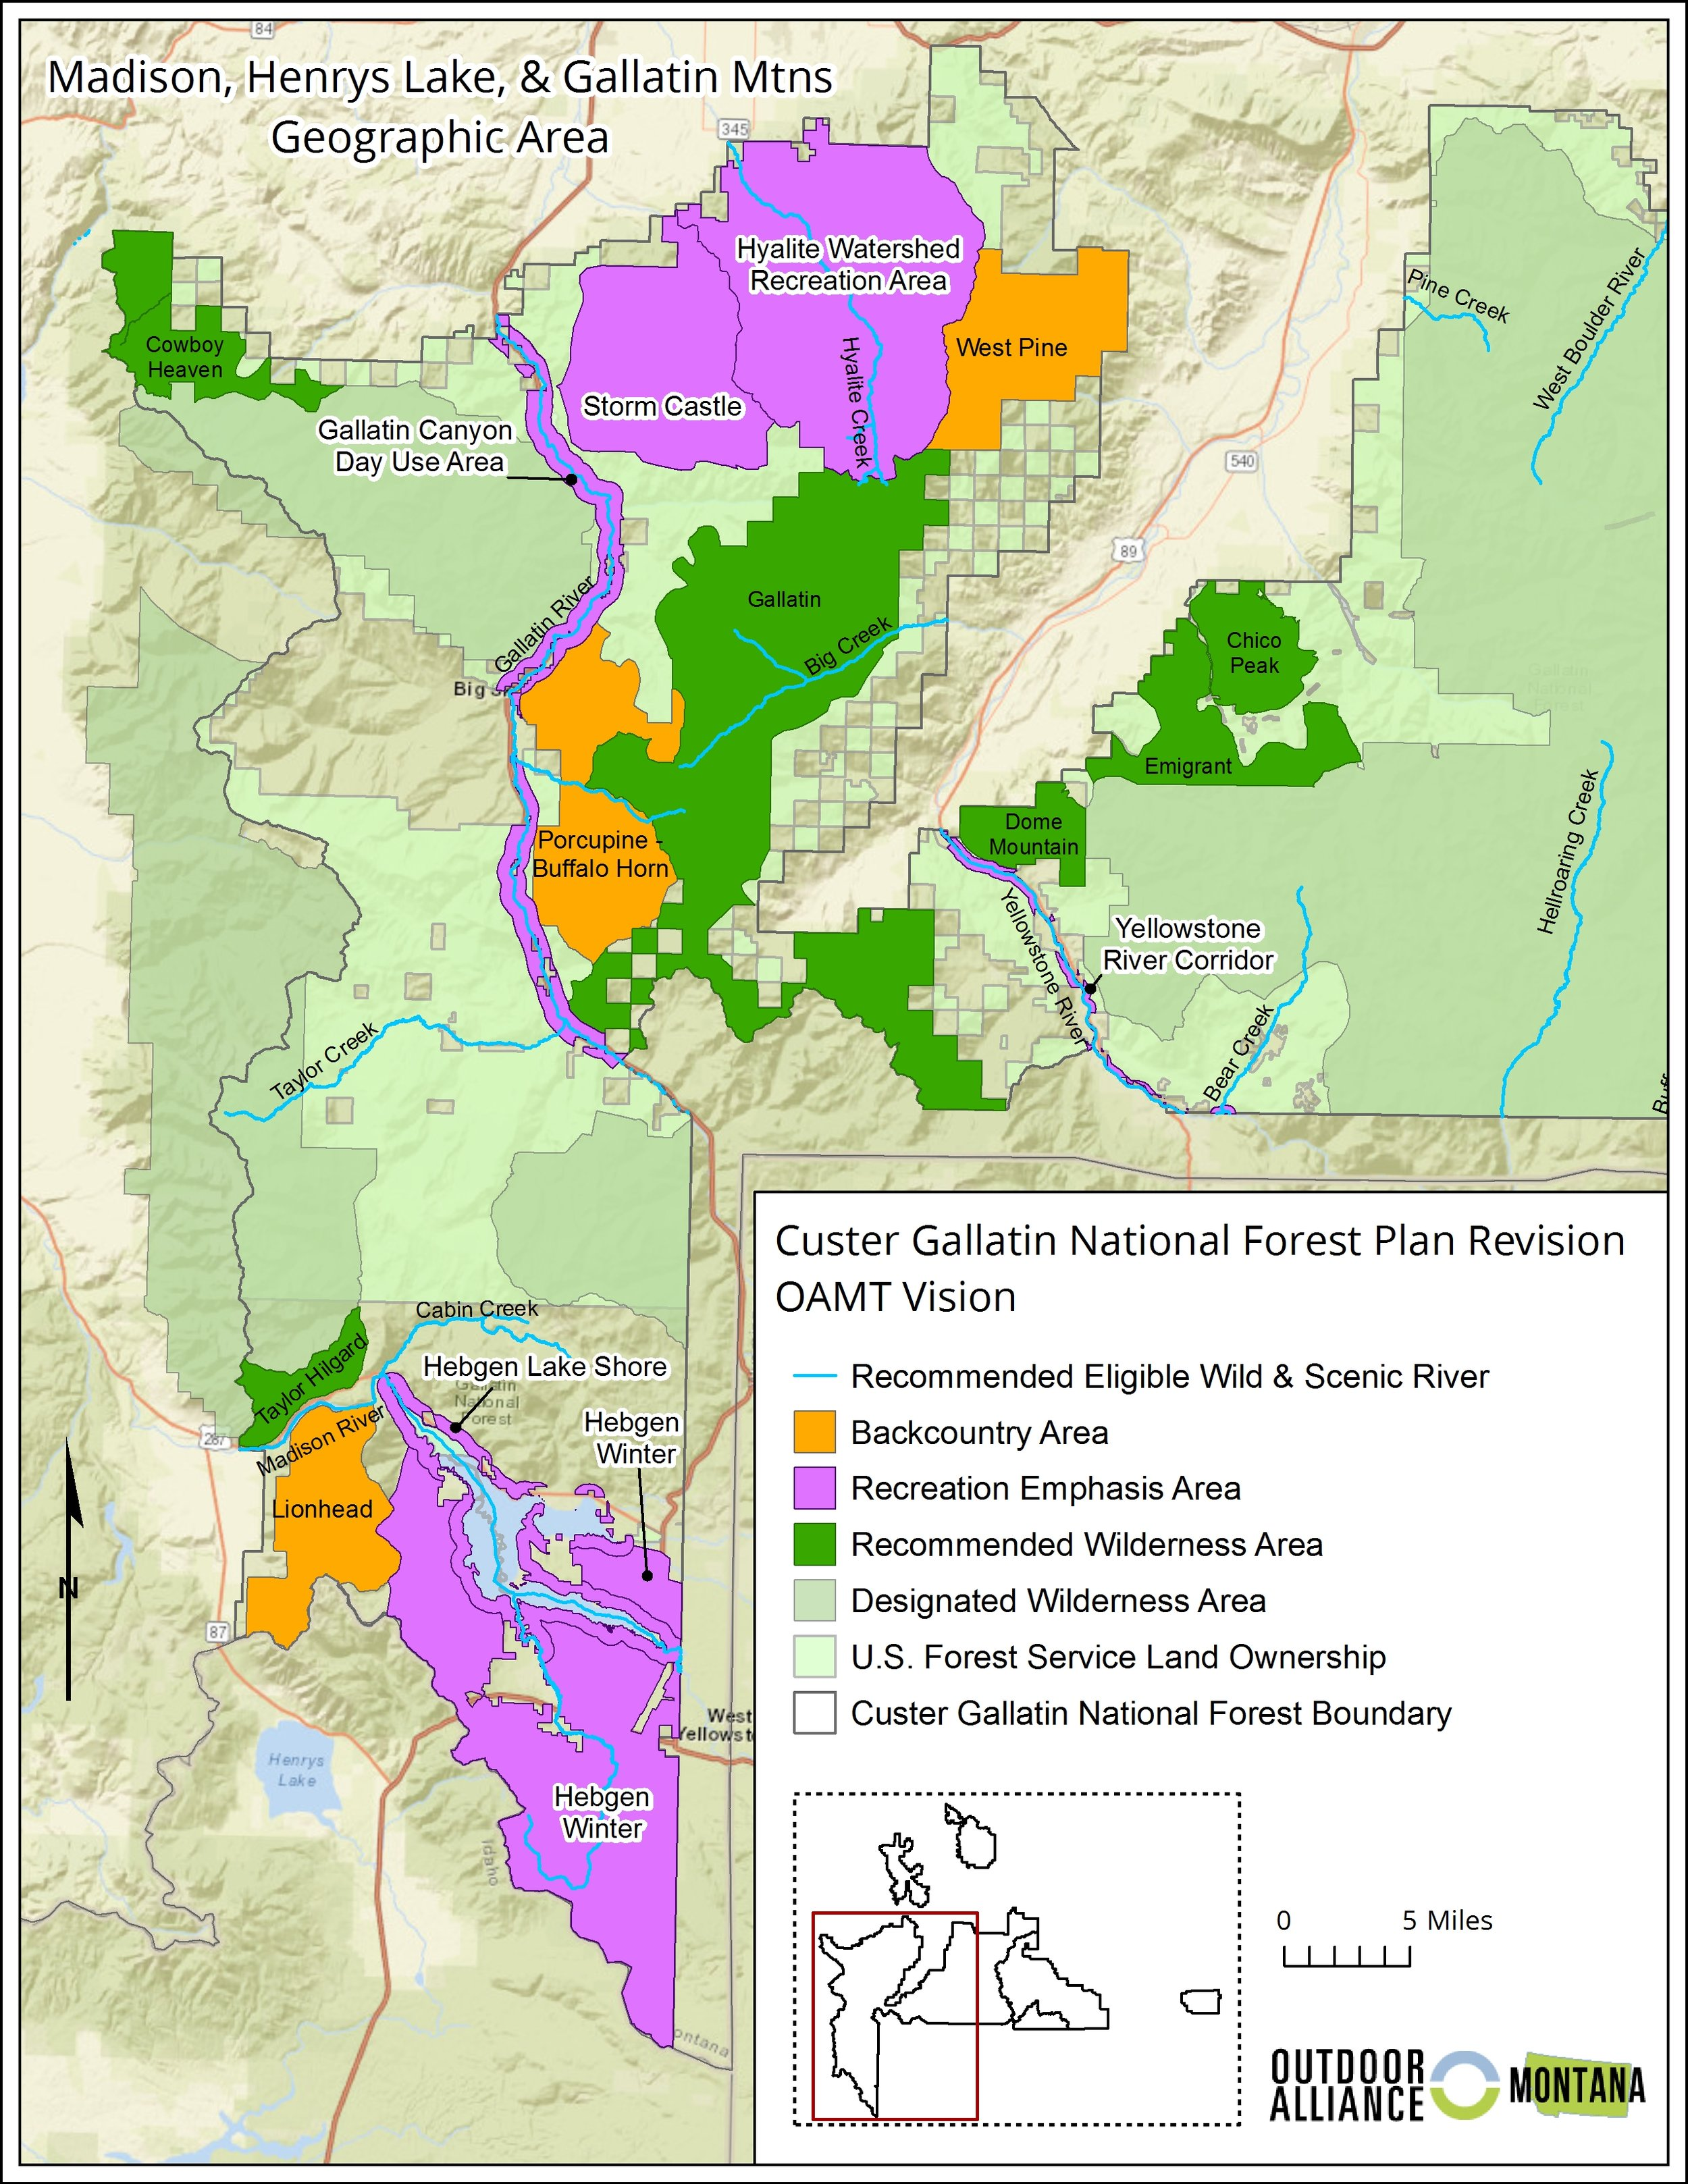 Maps of OA Montana's vision for the Custer Gallatin National Forest.